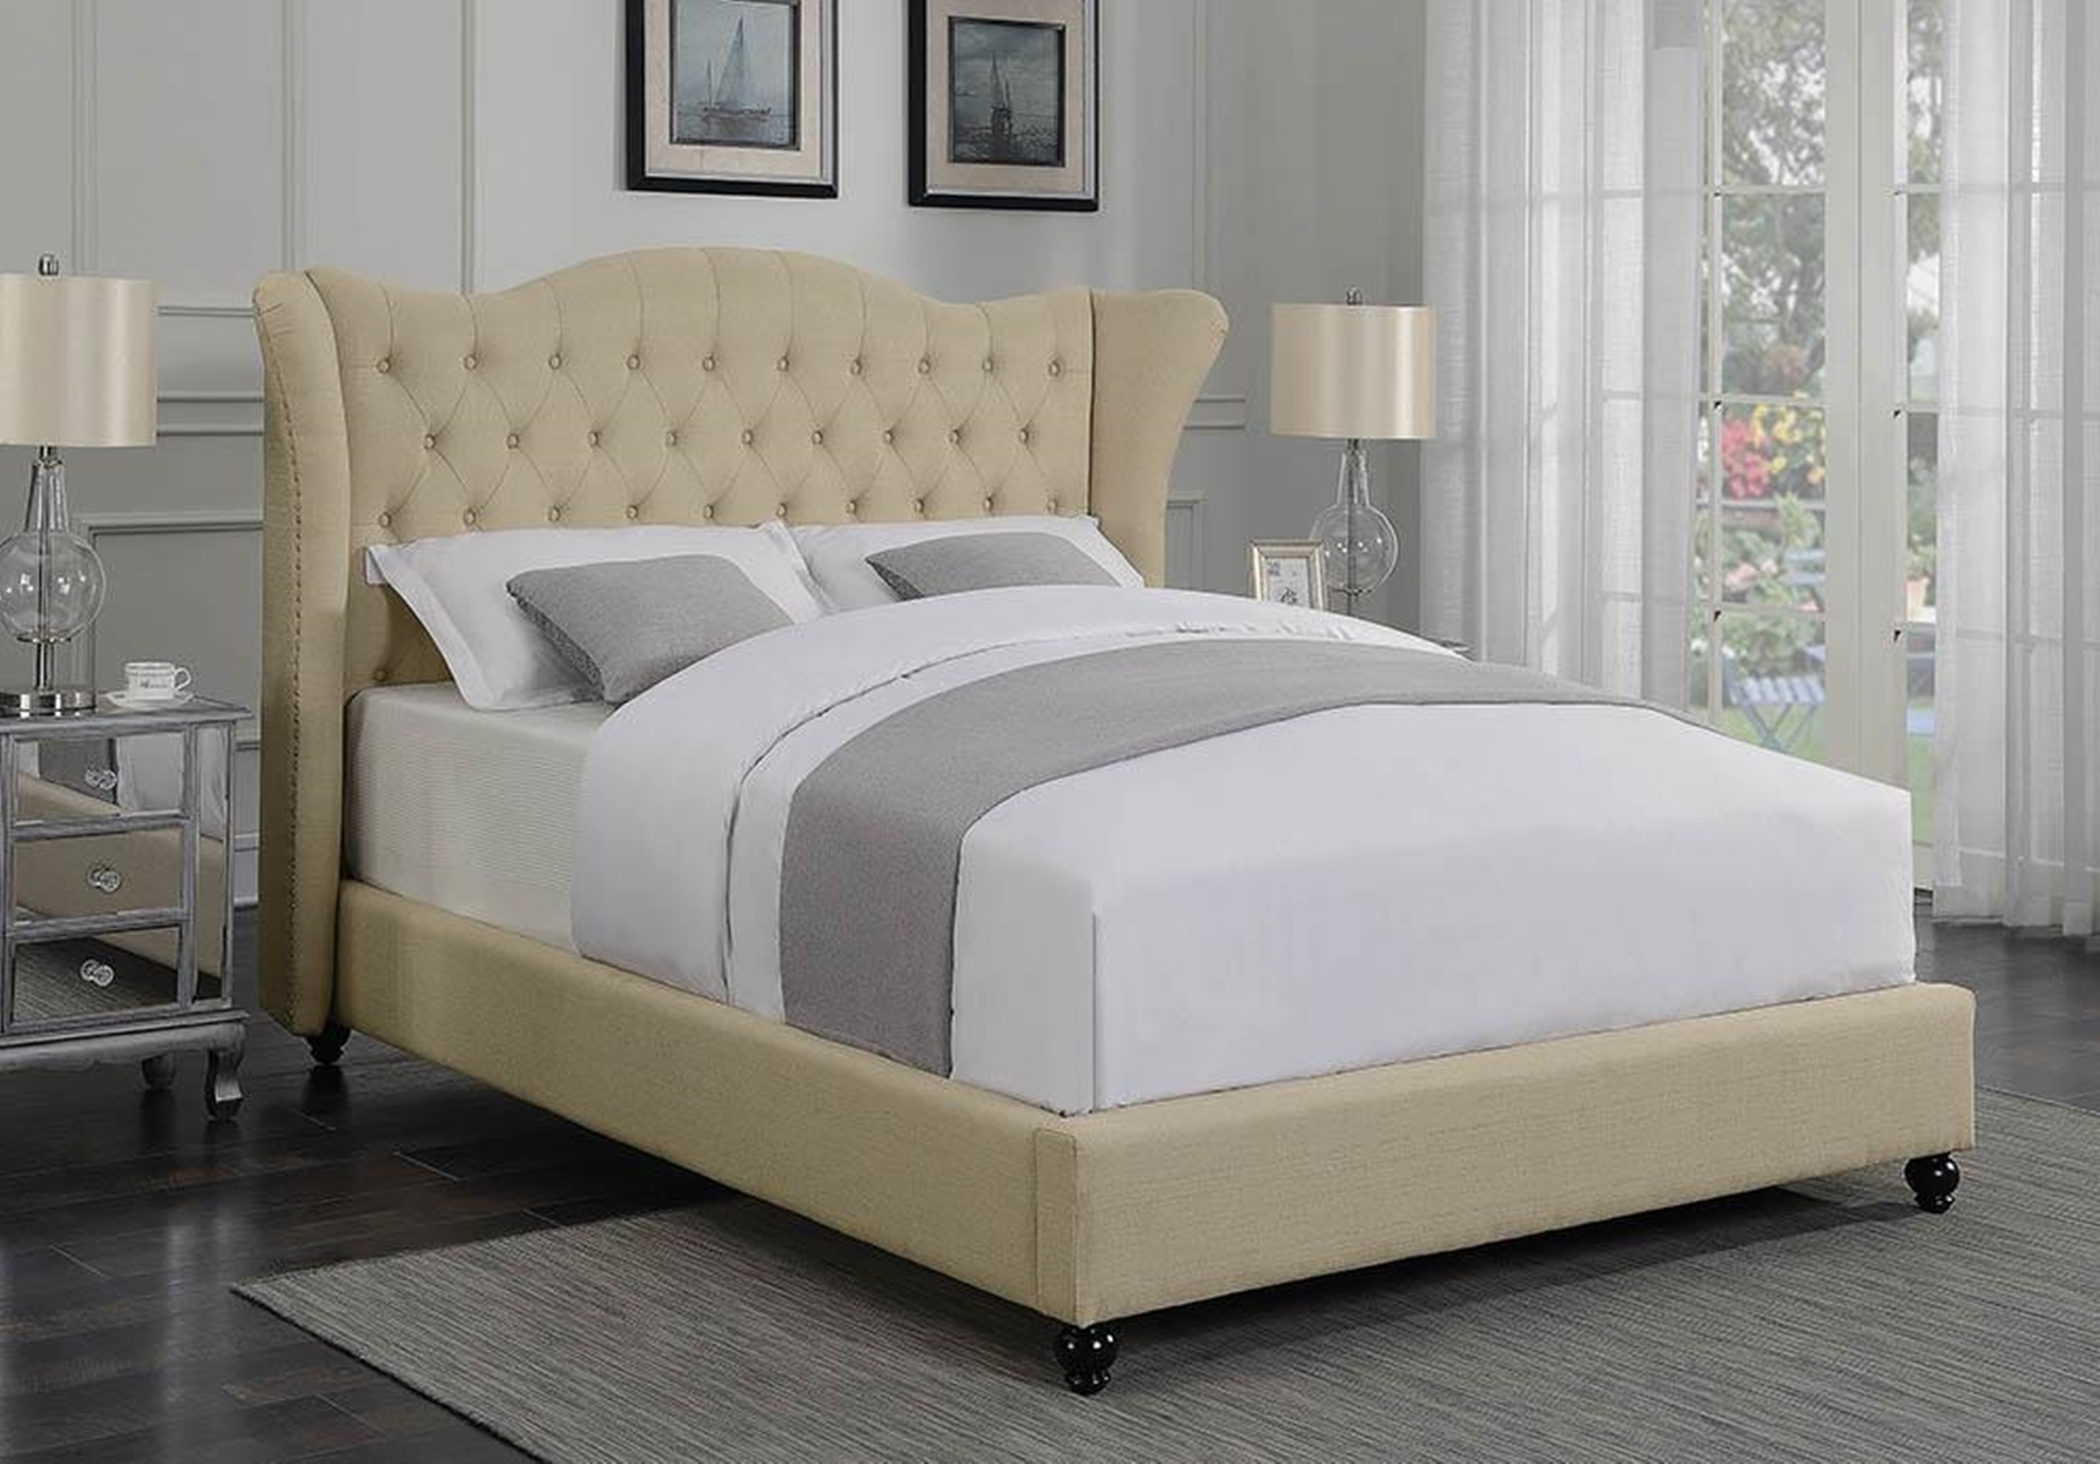 Coronado Beige Upholstered Queen Bed